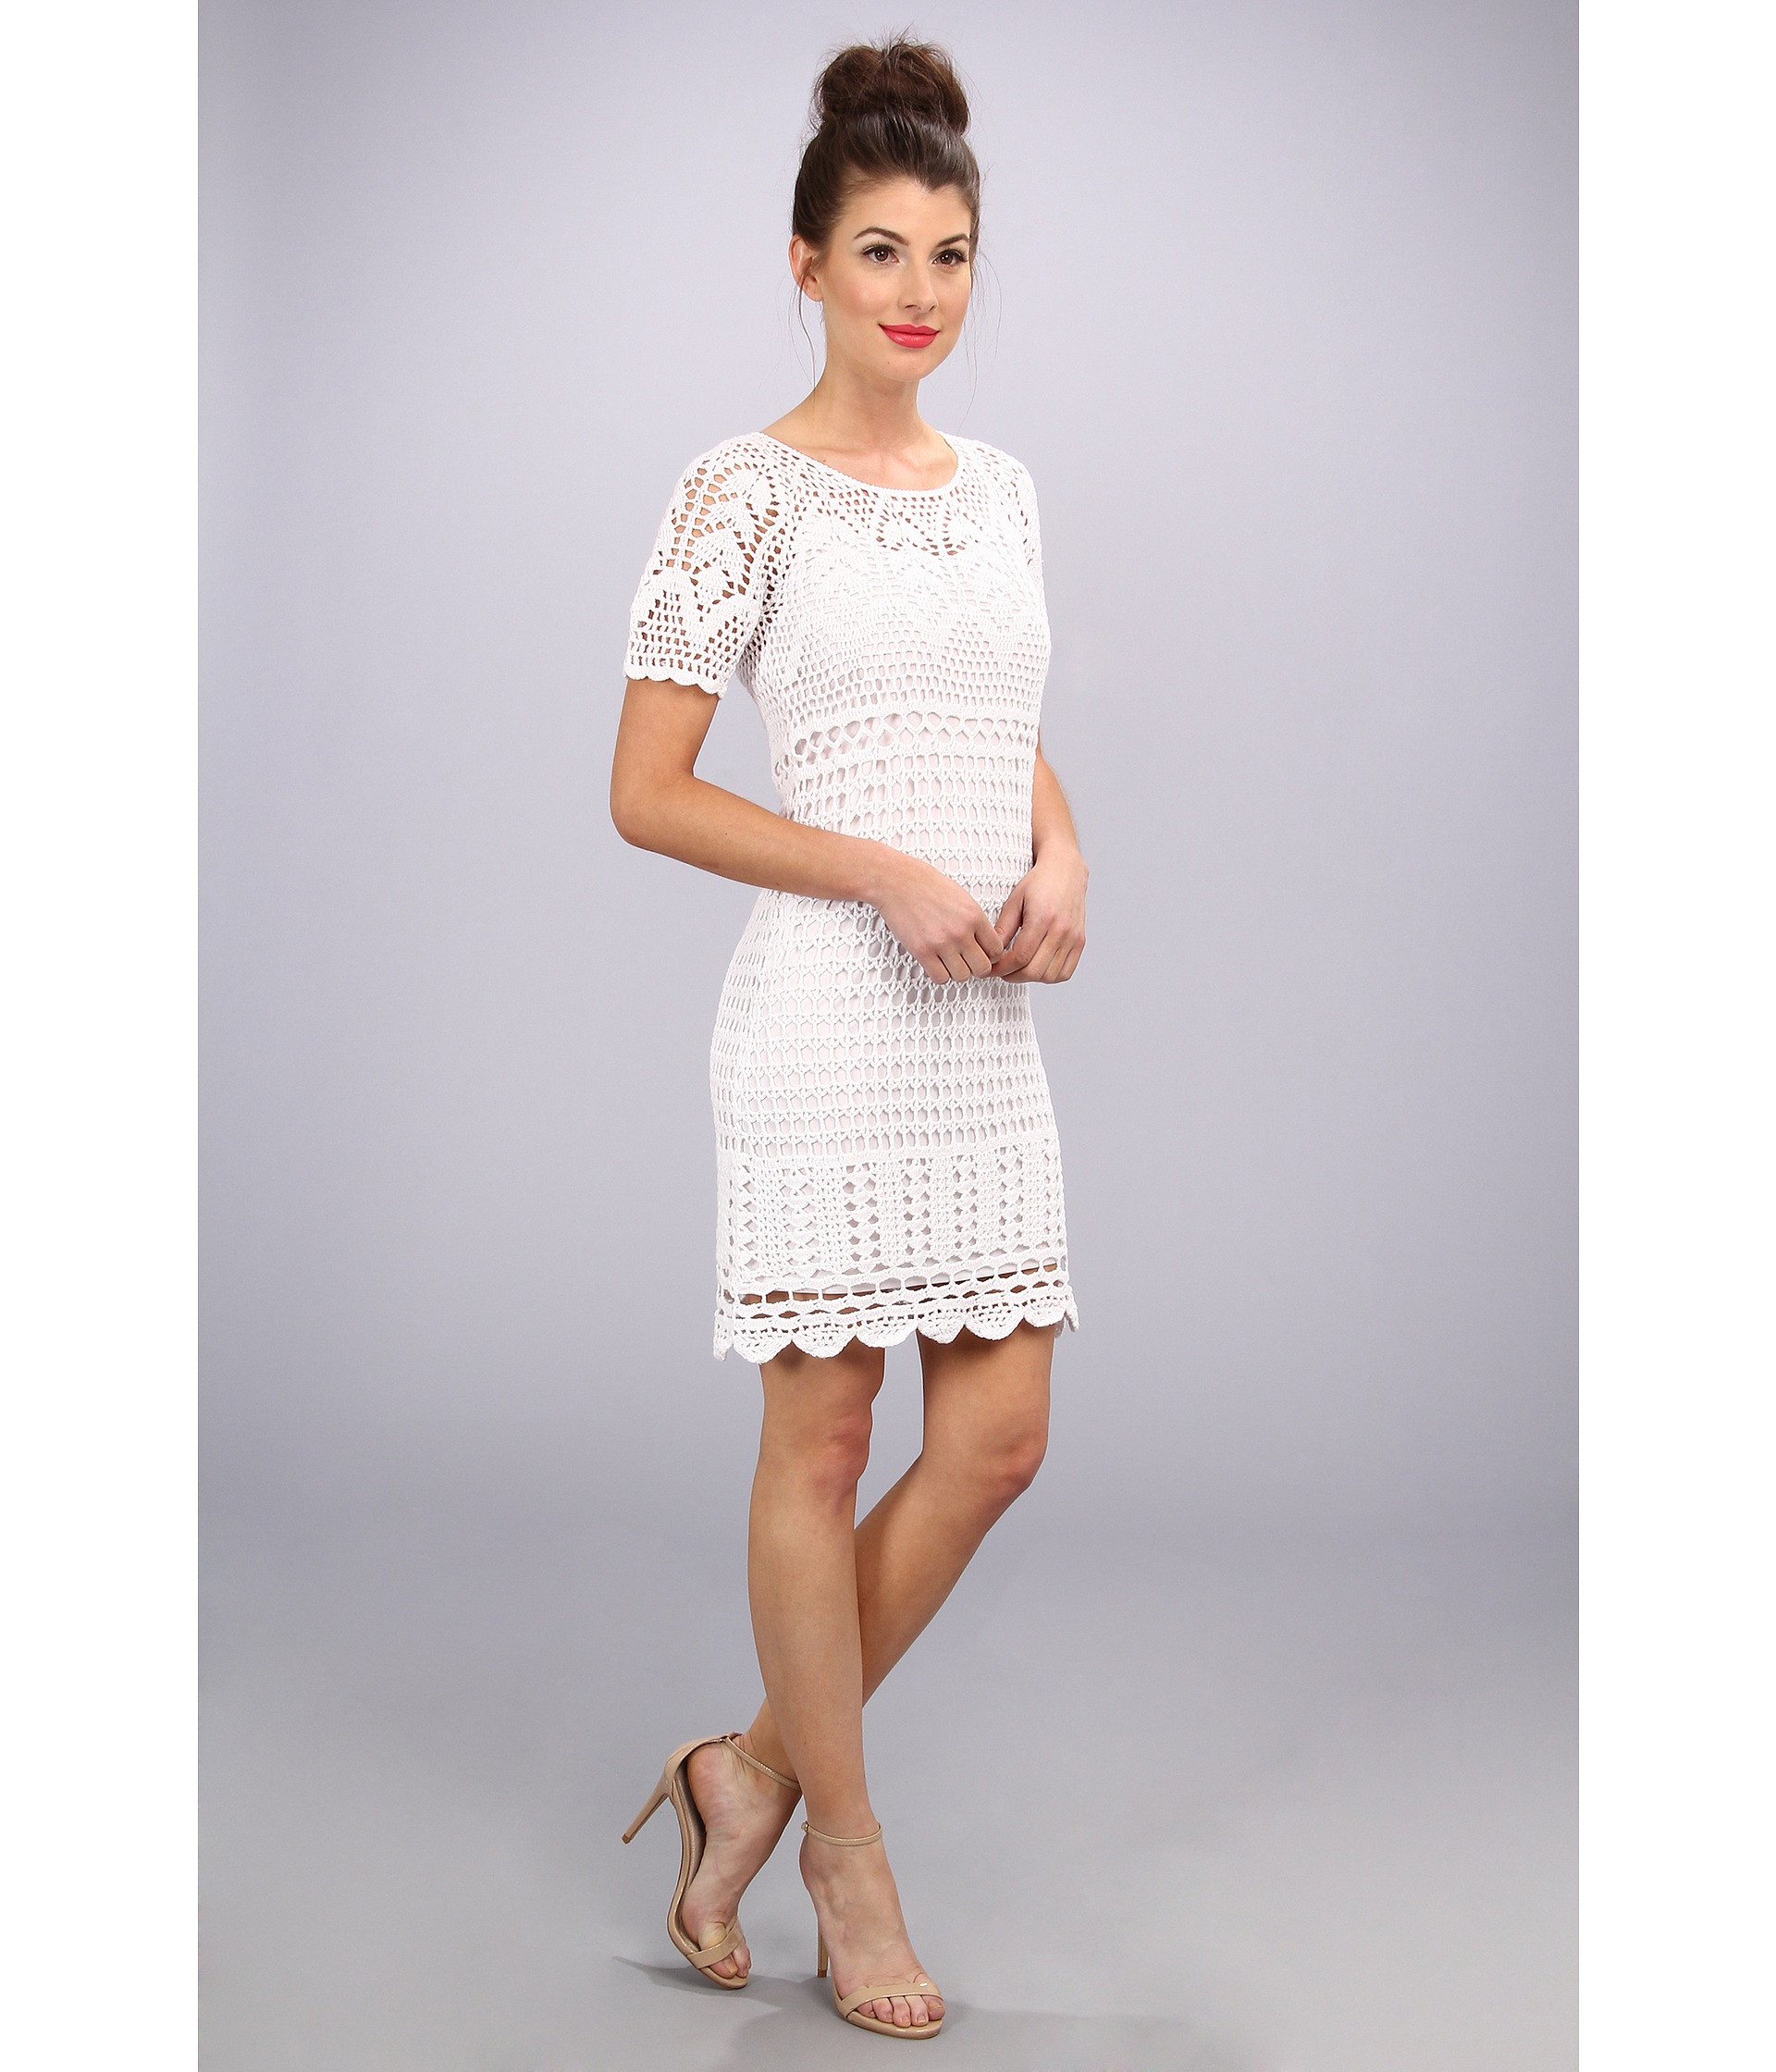 White Crochet Dress Fresh White Crochet Dress Dress Ty Of Adorable 49 Pics White Crochet Dress